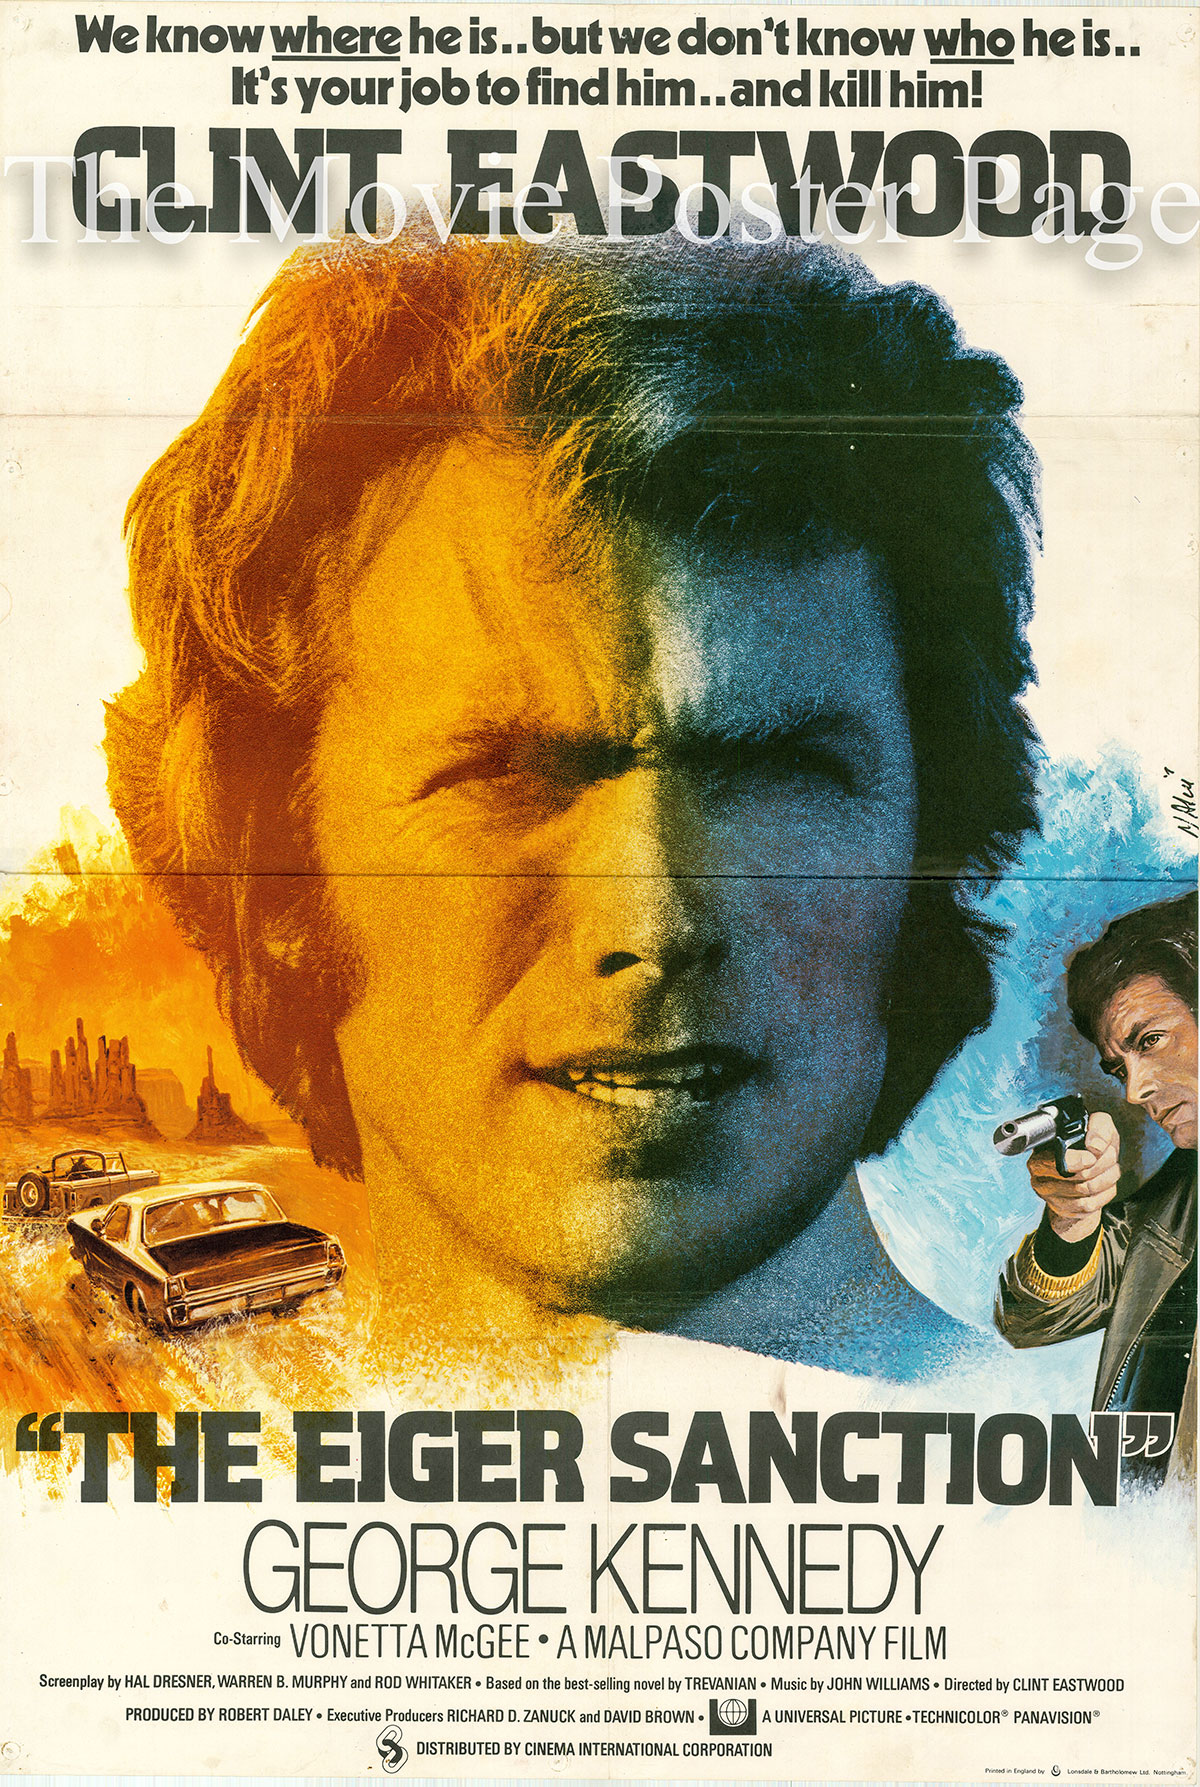 Pictured is a UK one-sheet poster designed by Jean Mascii for the 1975 Clint Eastwood film The Eiger Sanction starring Clint Eastwood.